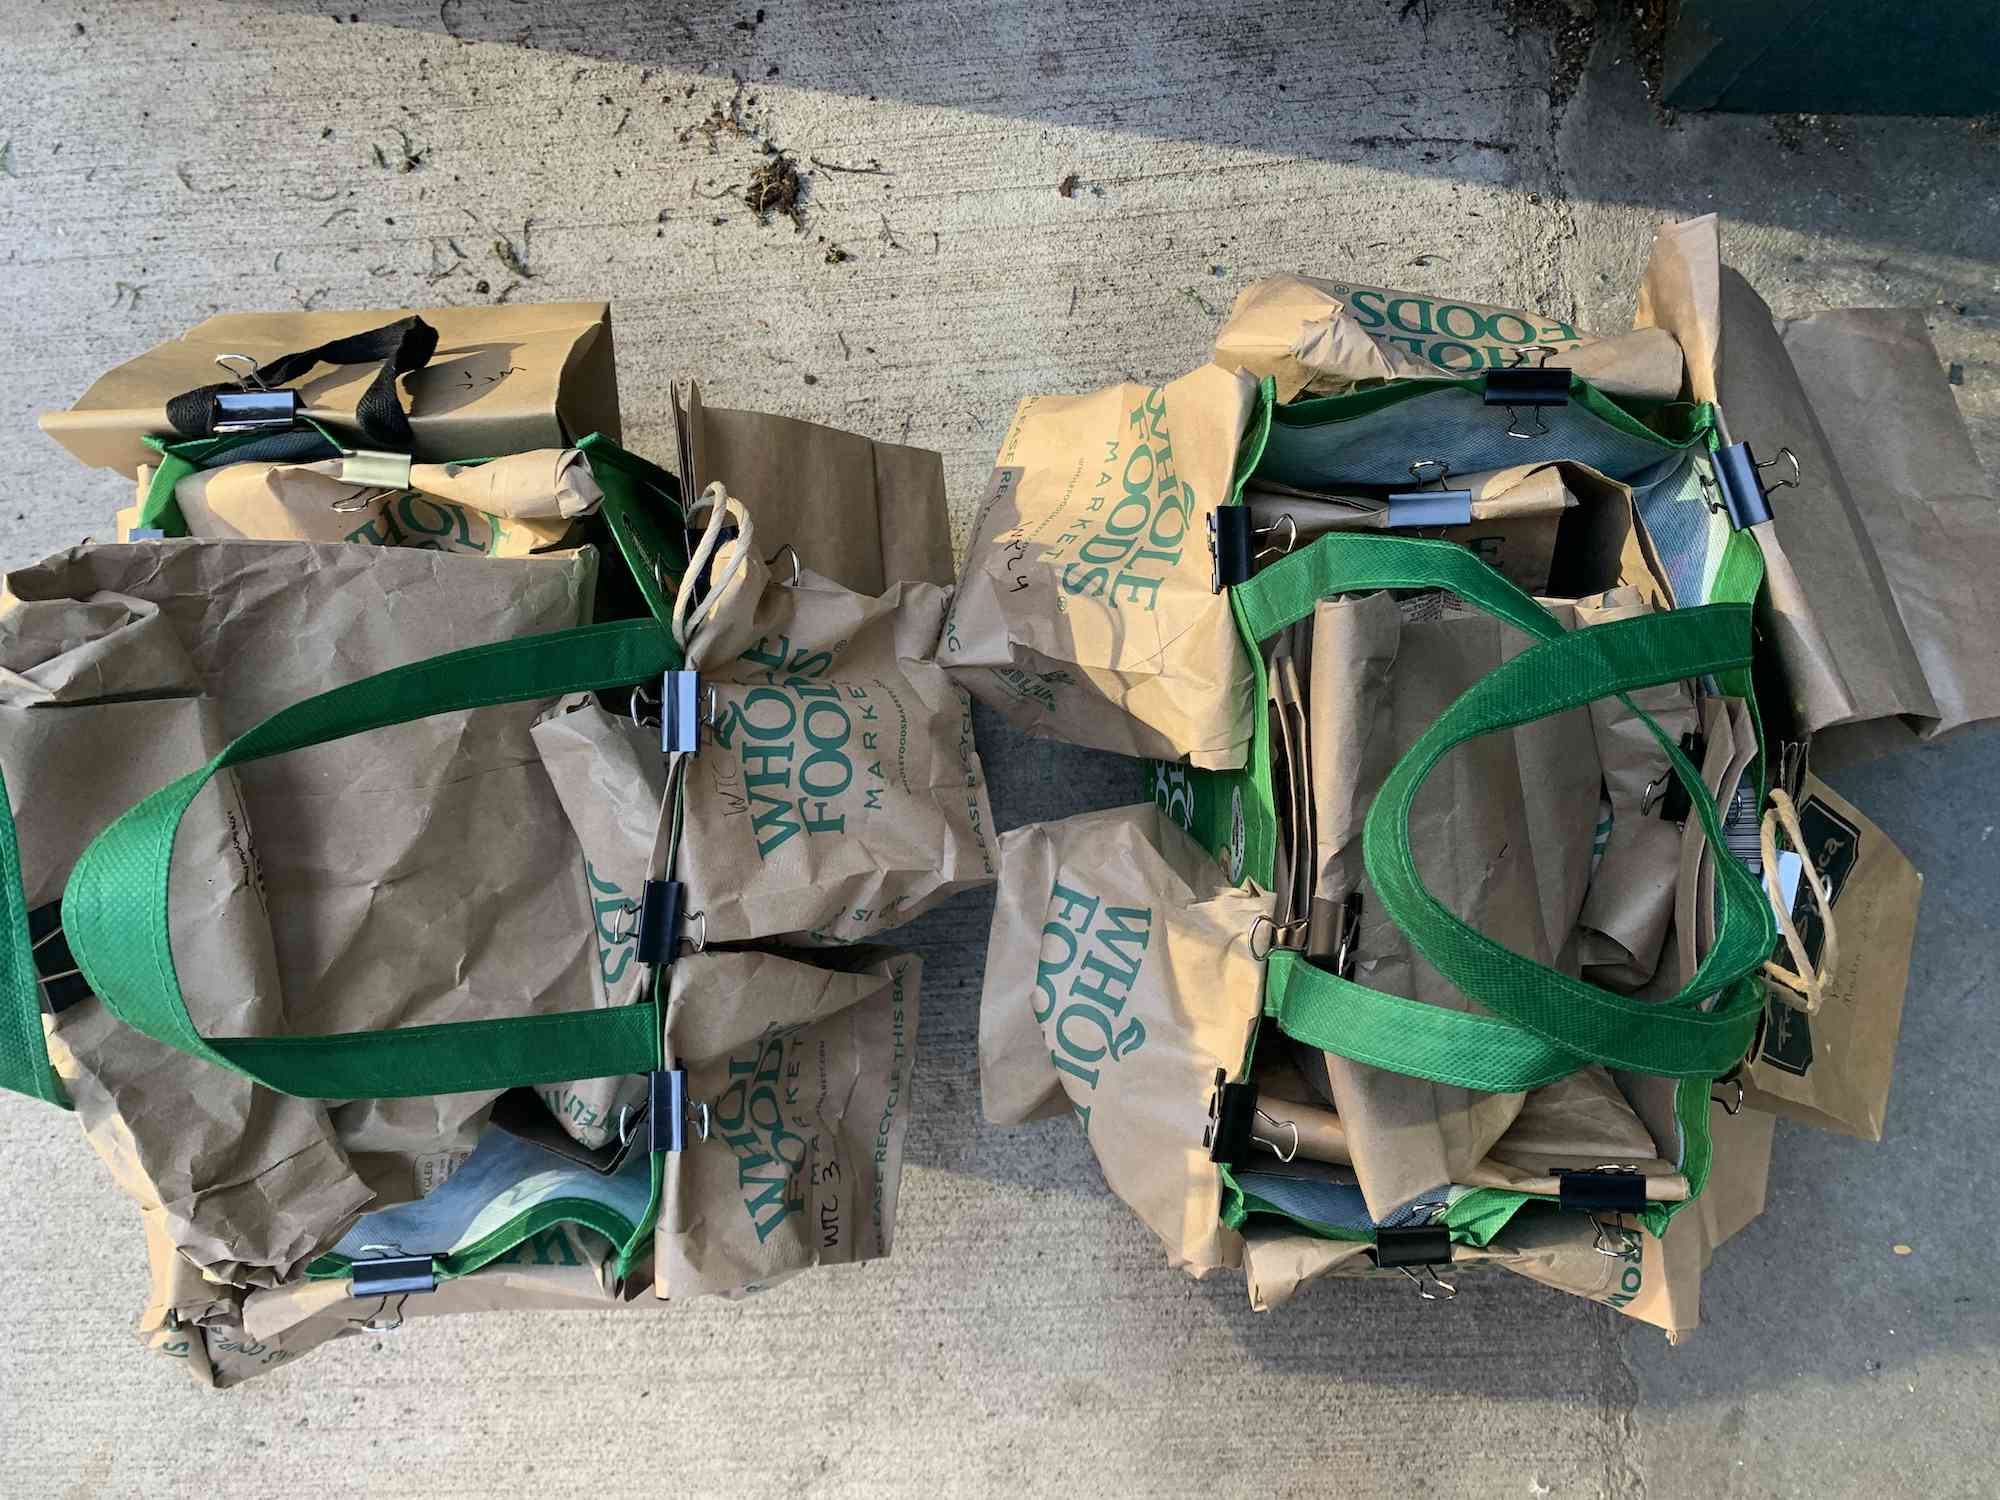 Shopping bags filled with bags